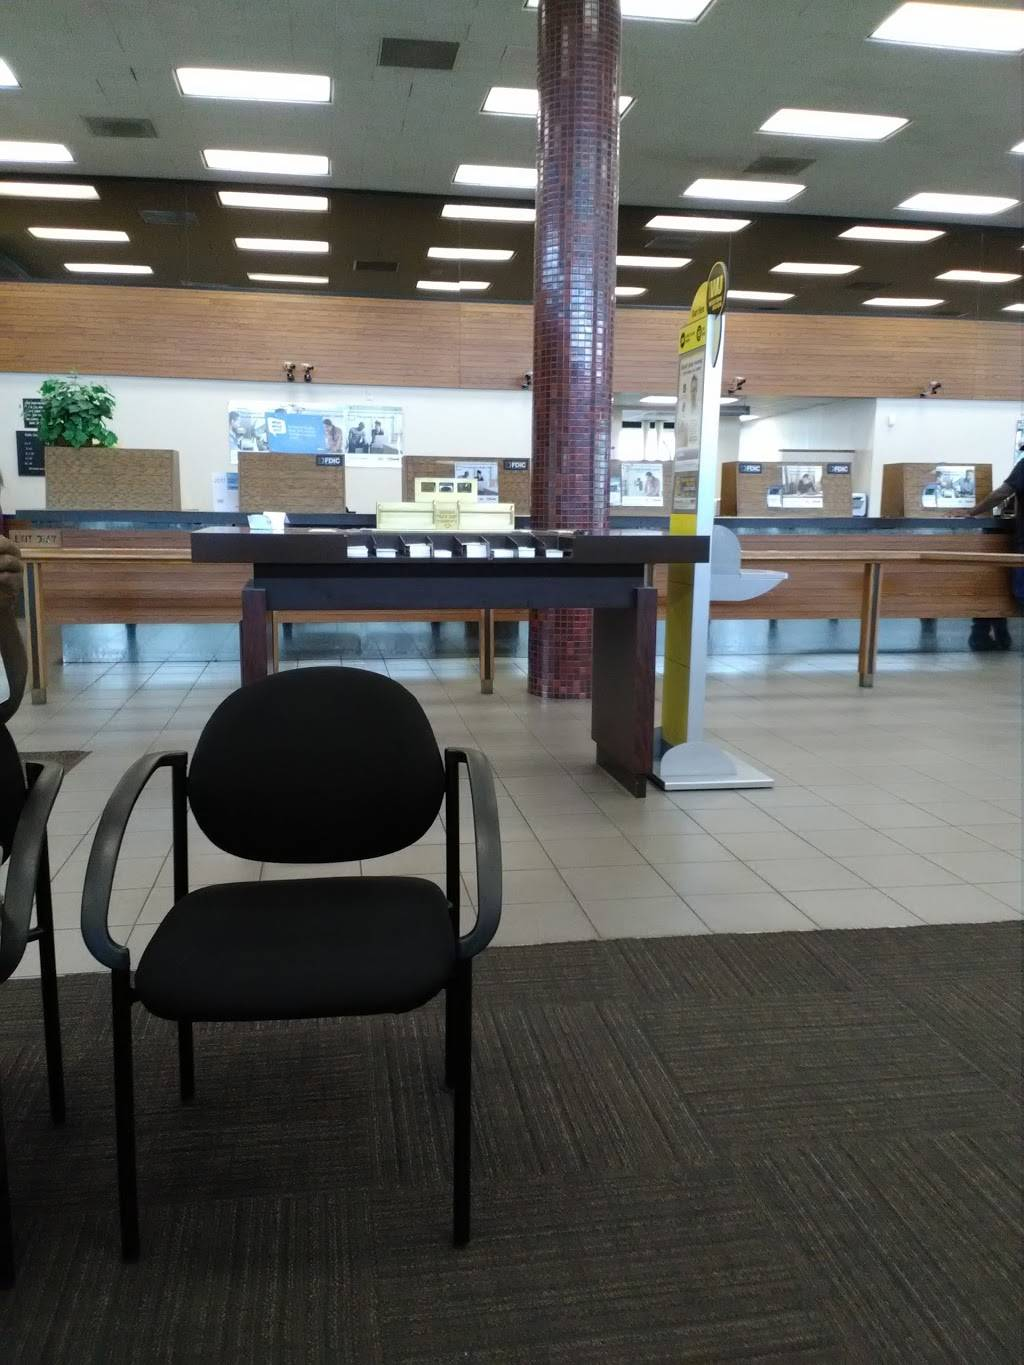 U.S. Bank Branch - bank  | Photo 4 of 7 | Address: 201 N Florissant Rd, Ferguson, MO 63135, USA | Phone: (314) 524-0503